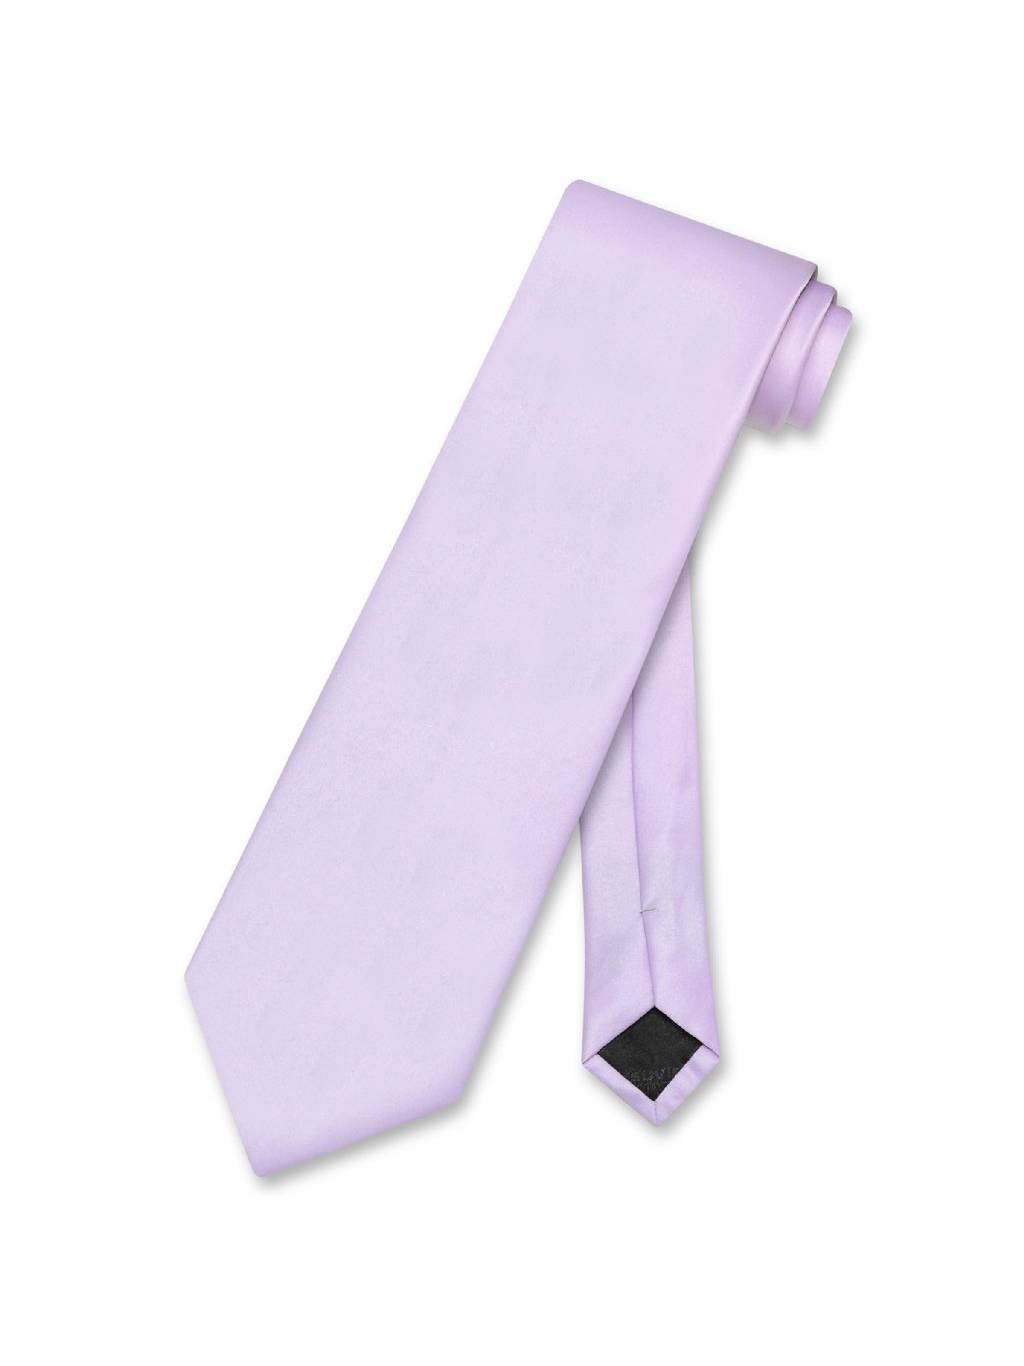 Vesuvio Napoli NeckTie Solid Lavender Purple Color Men's Neck Tie